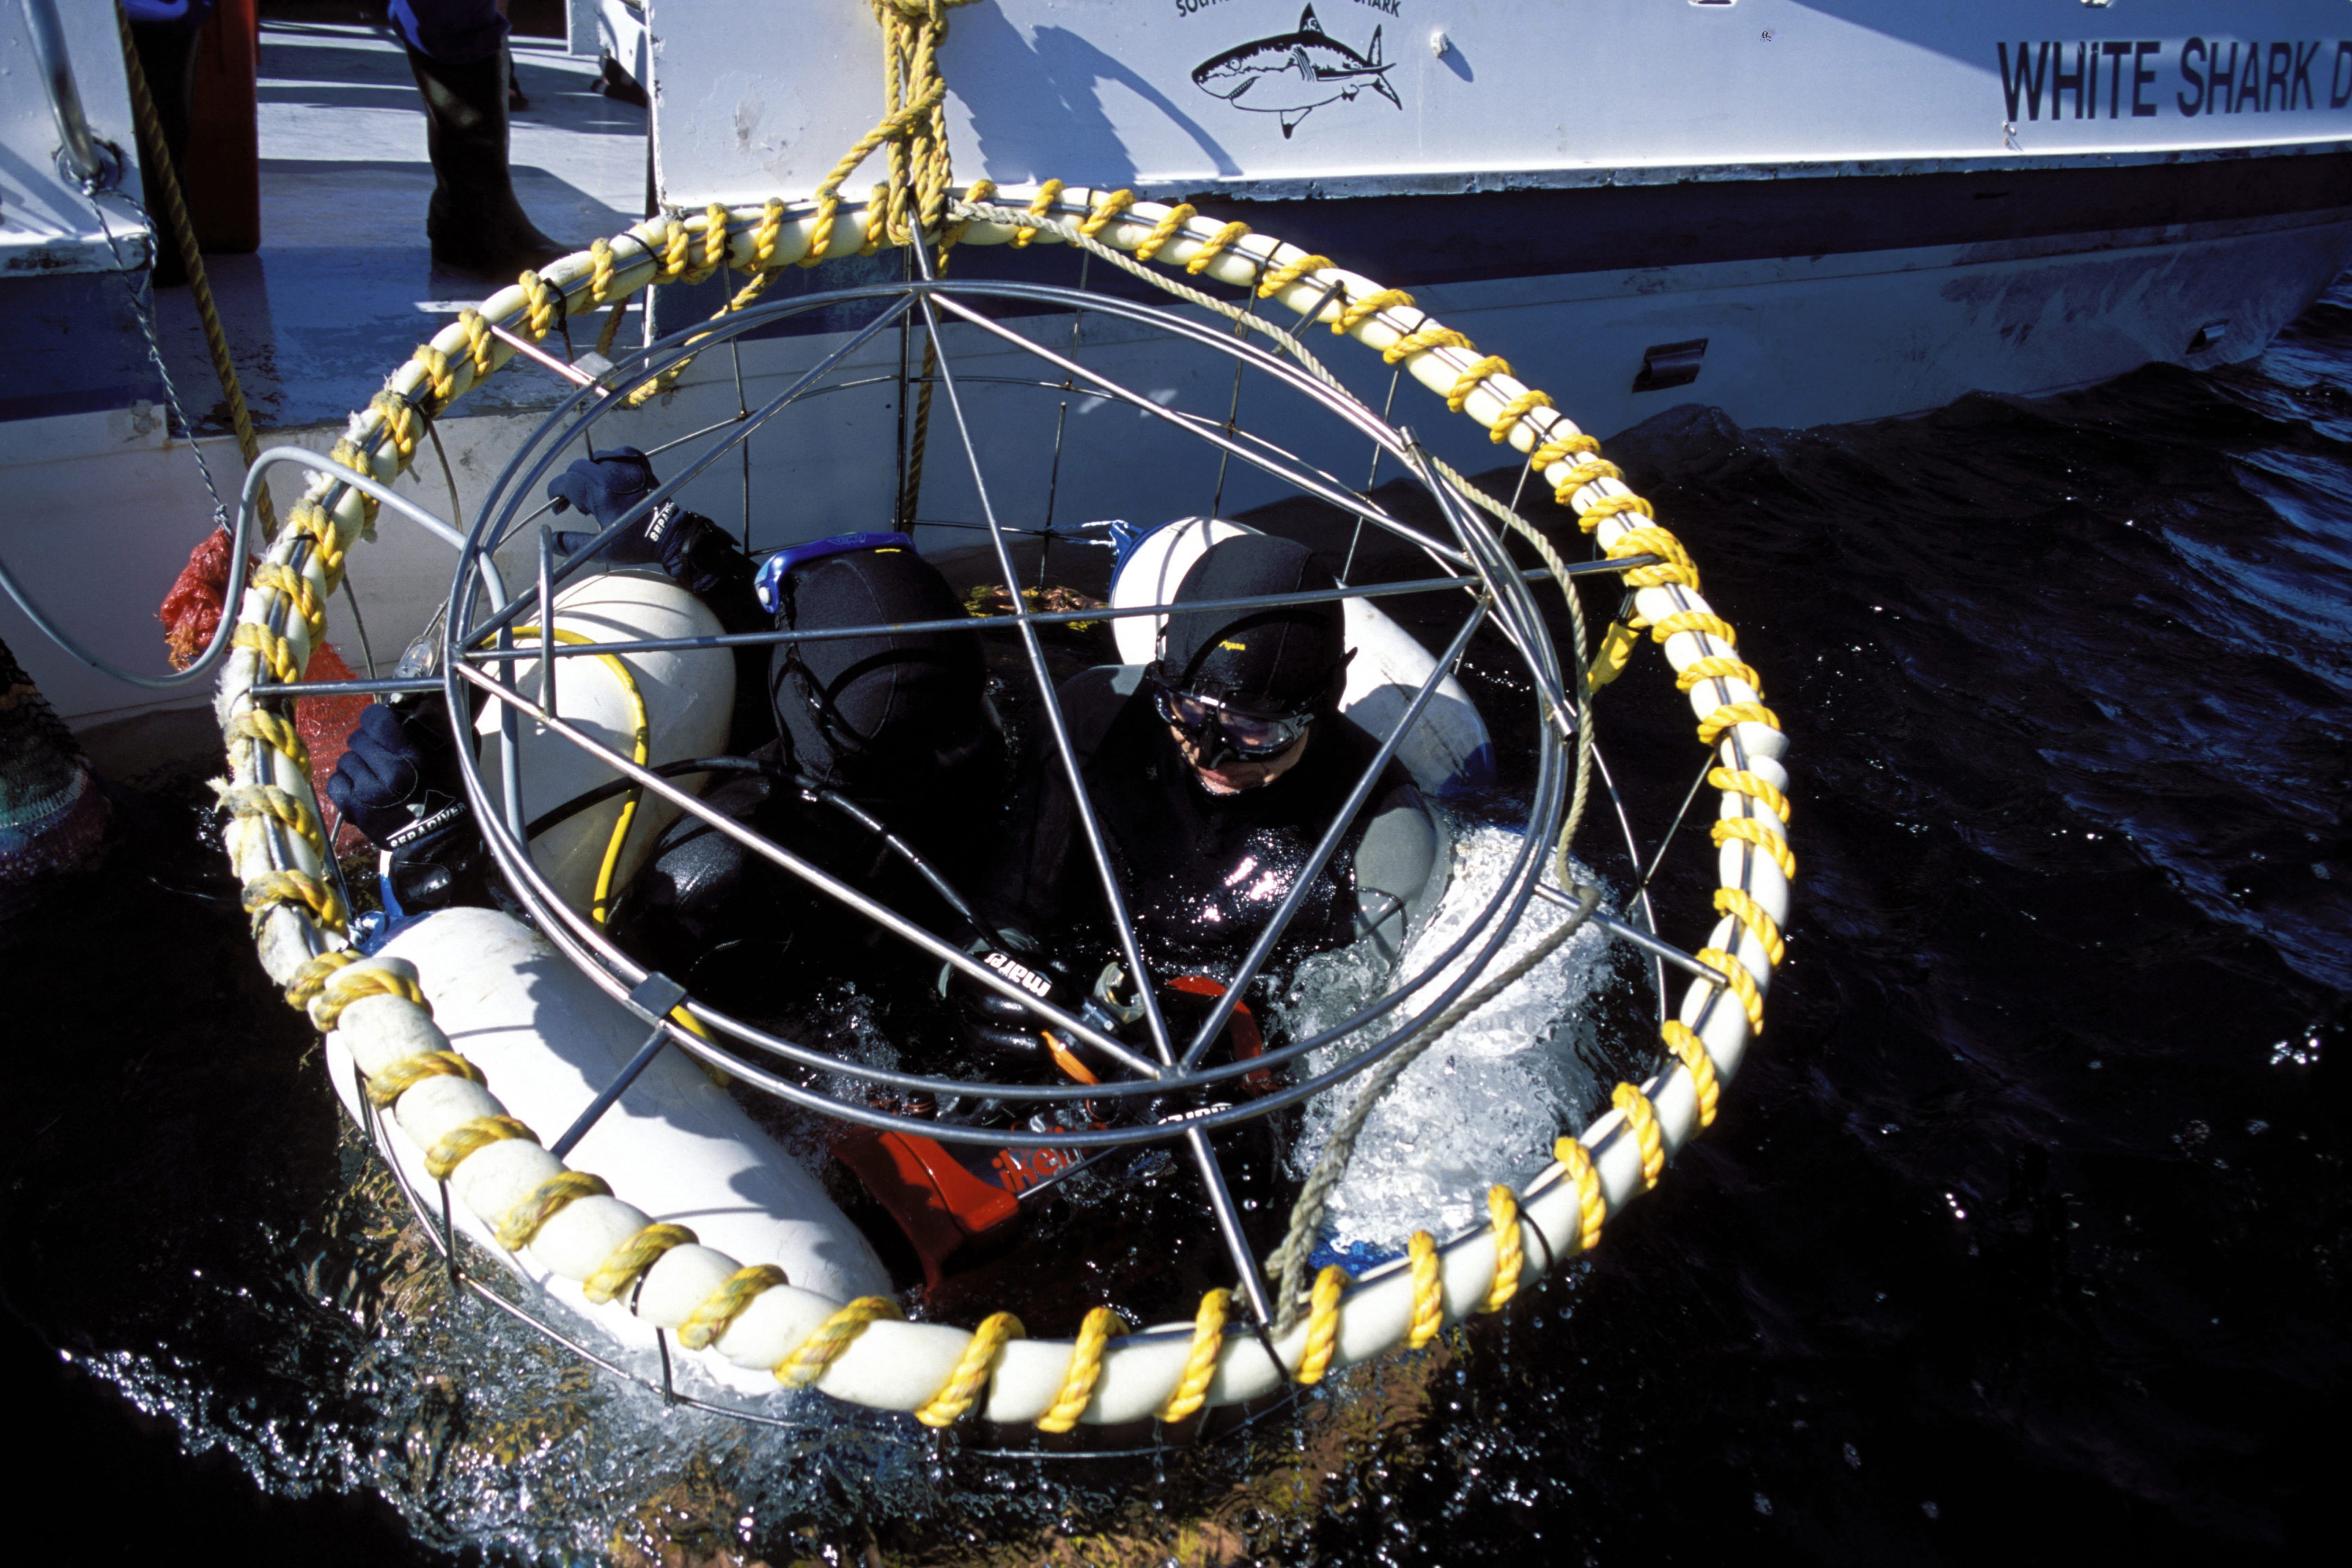 Shark cage with diver